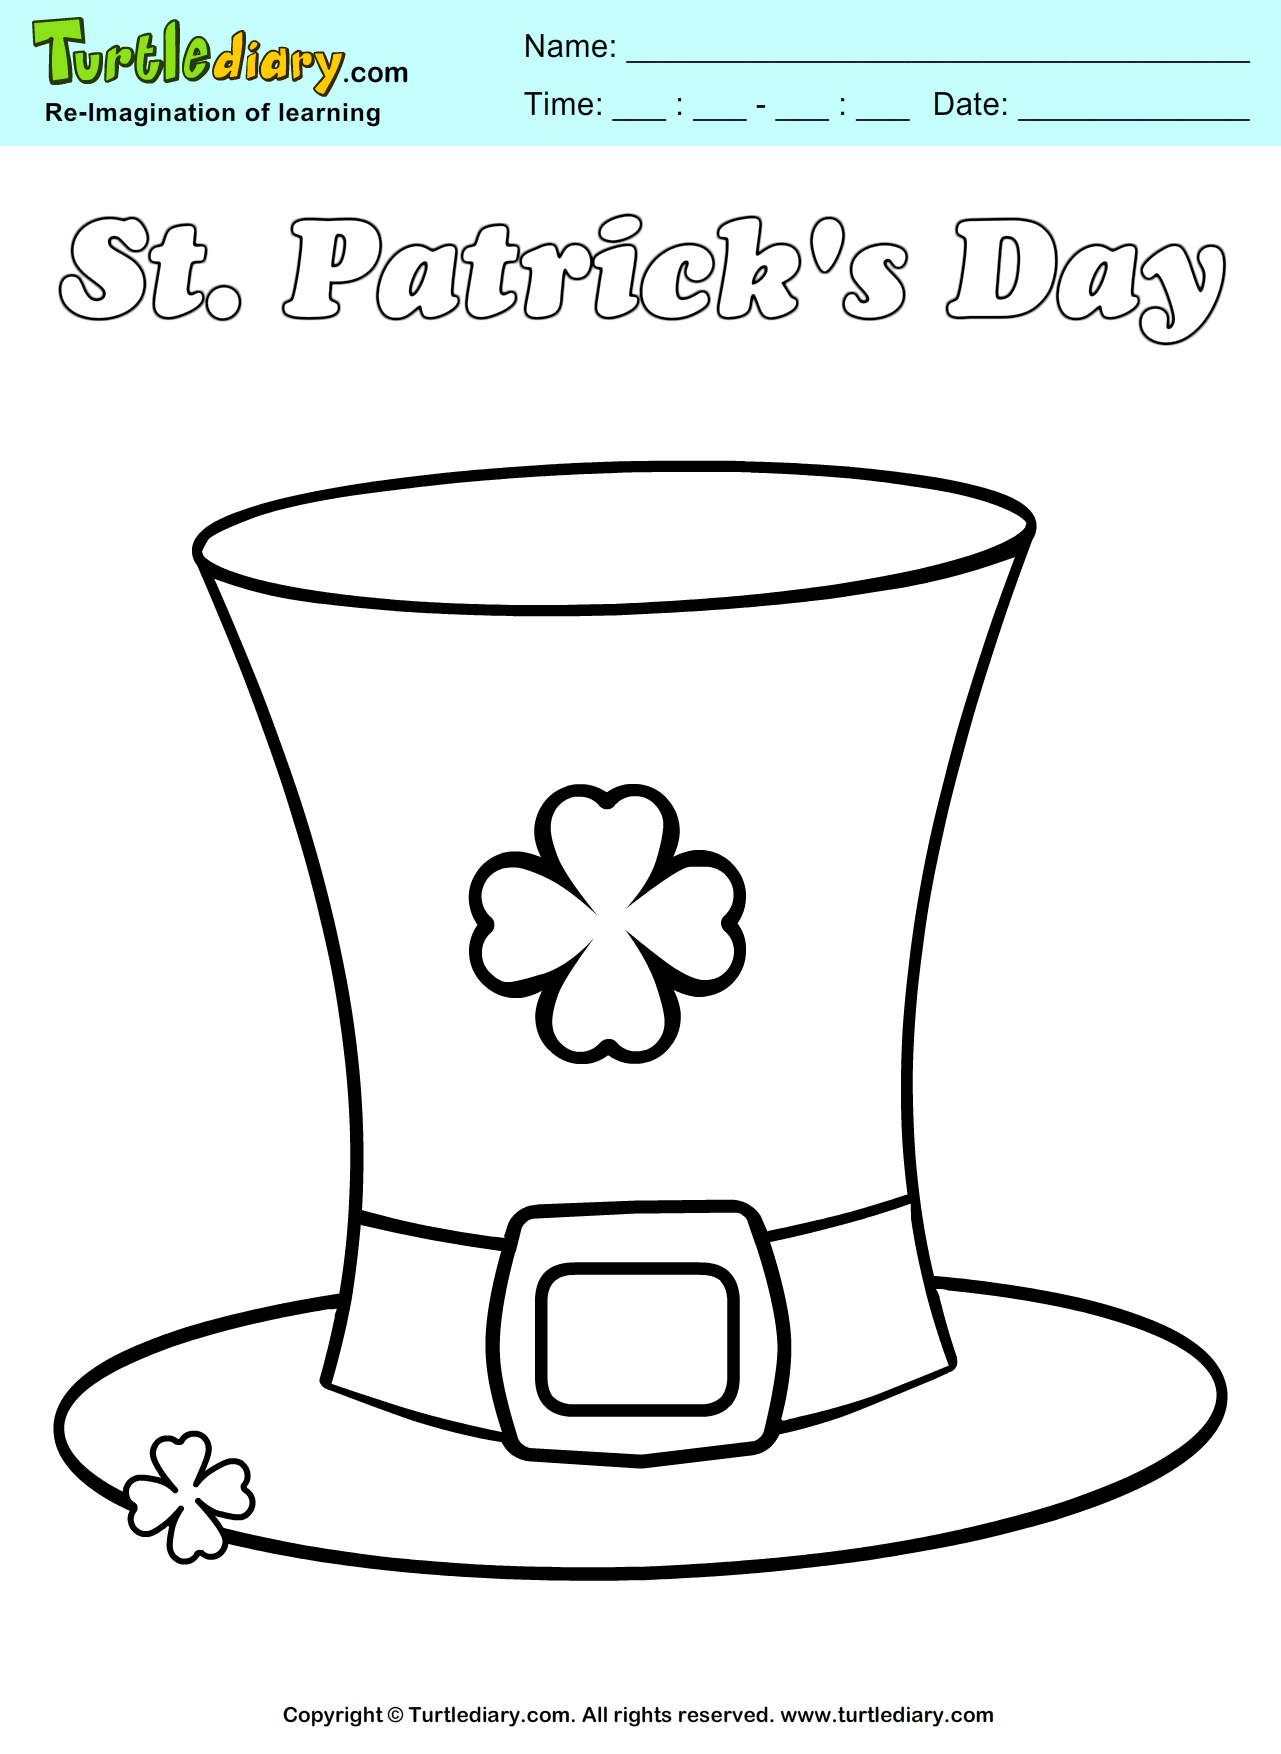 St Patrick S Hat Coloring Page Coloring Sheet St Patricks Day Crafts For Kids St Patrick S Day Crafts St Patrick Day Activities